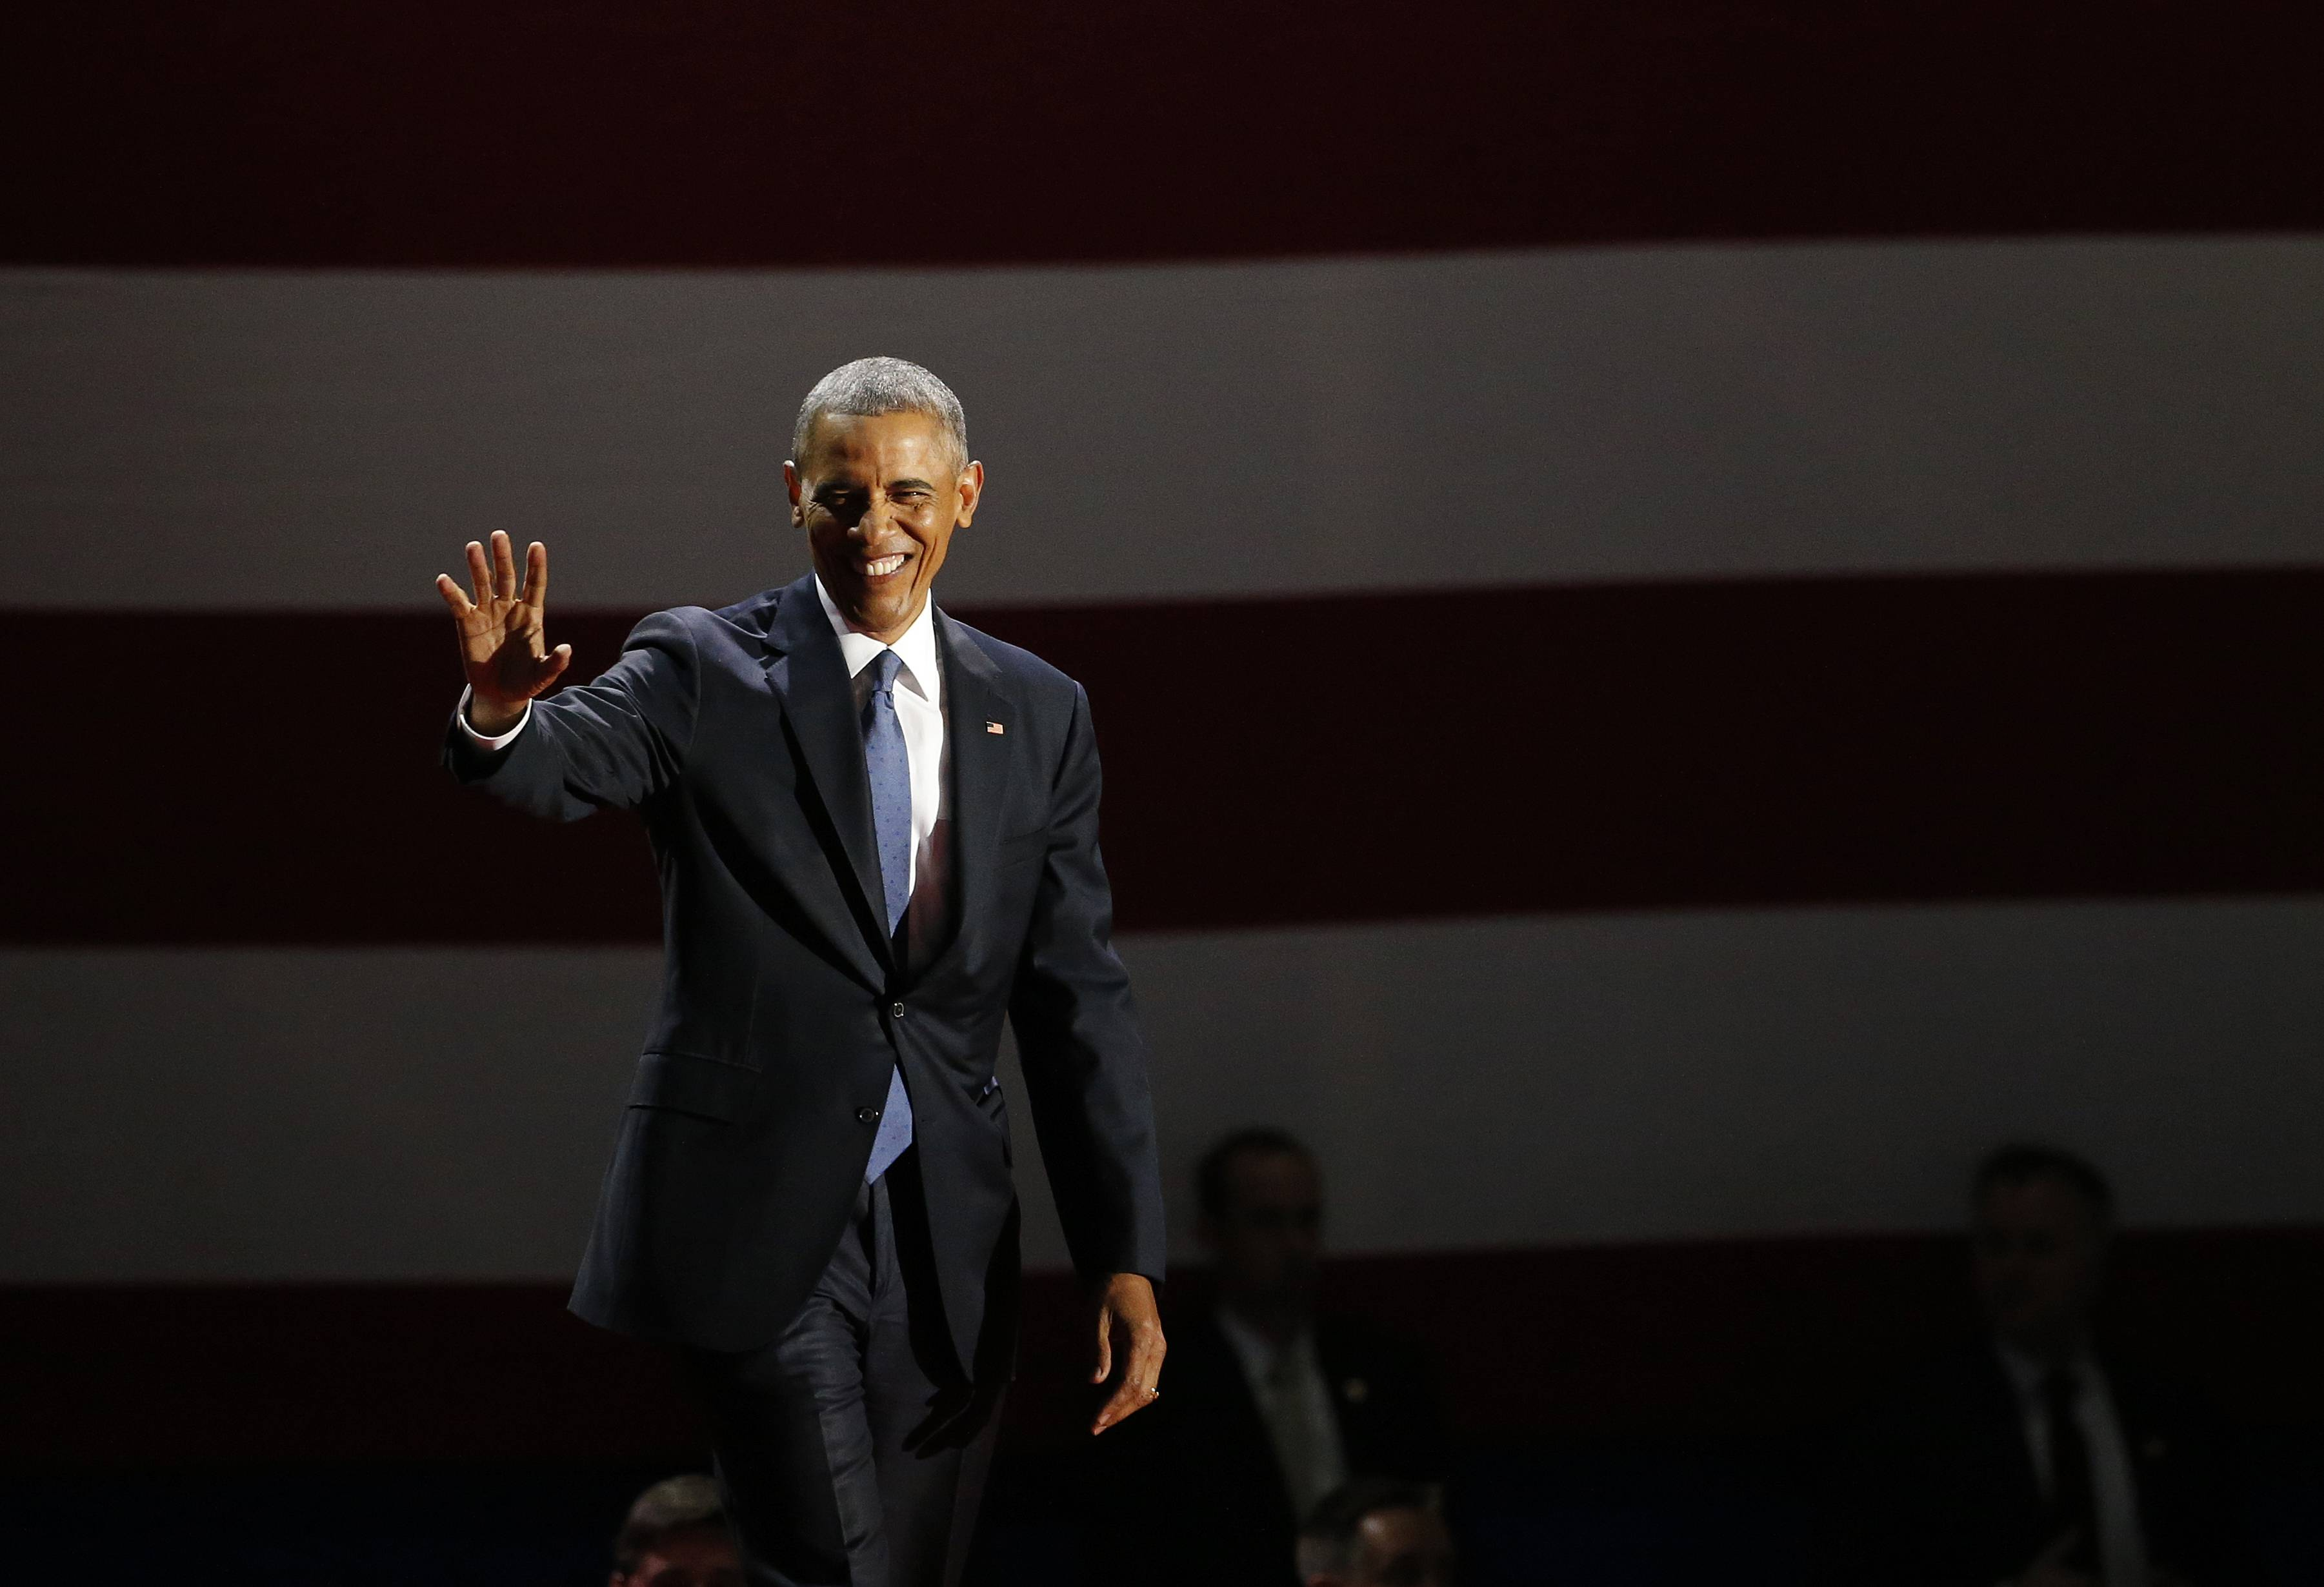 President Barack Obama waves as he arrives to speak at McCormick Place in Chicago, Tuesday.